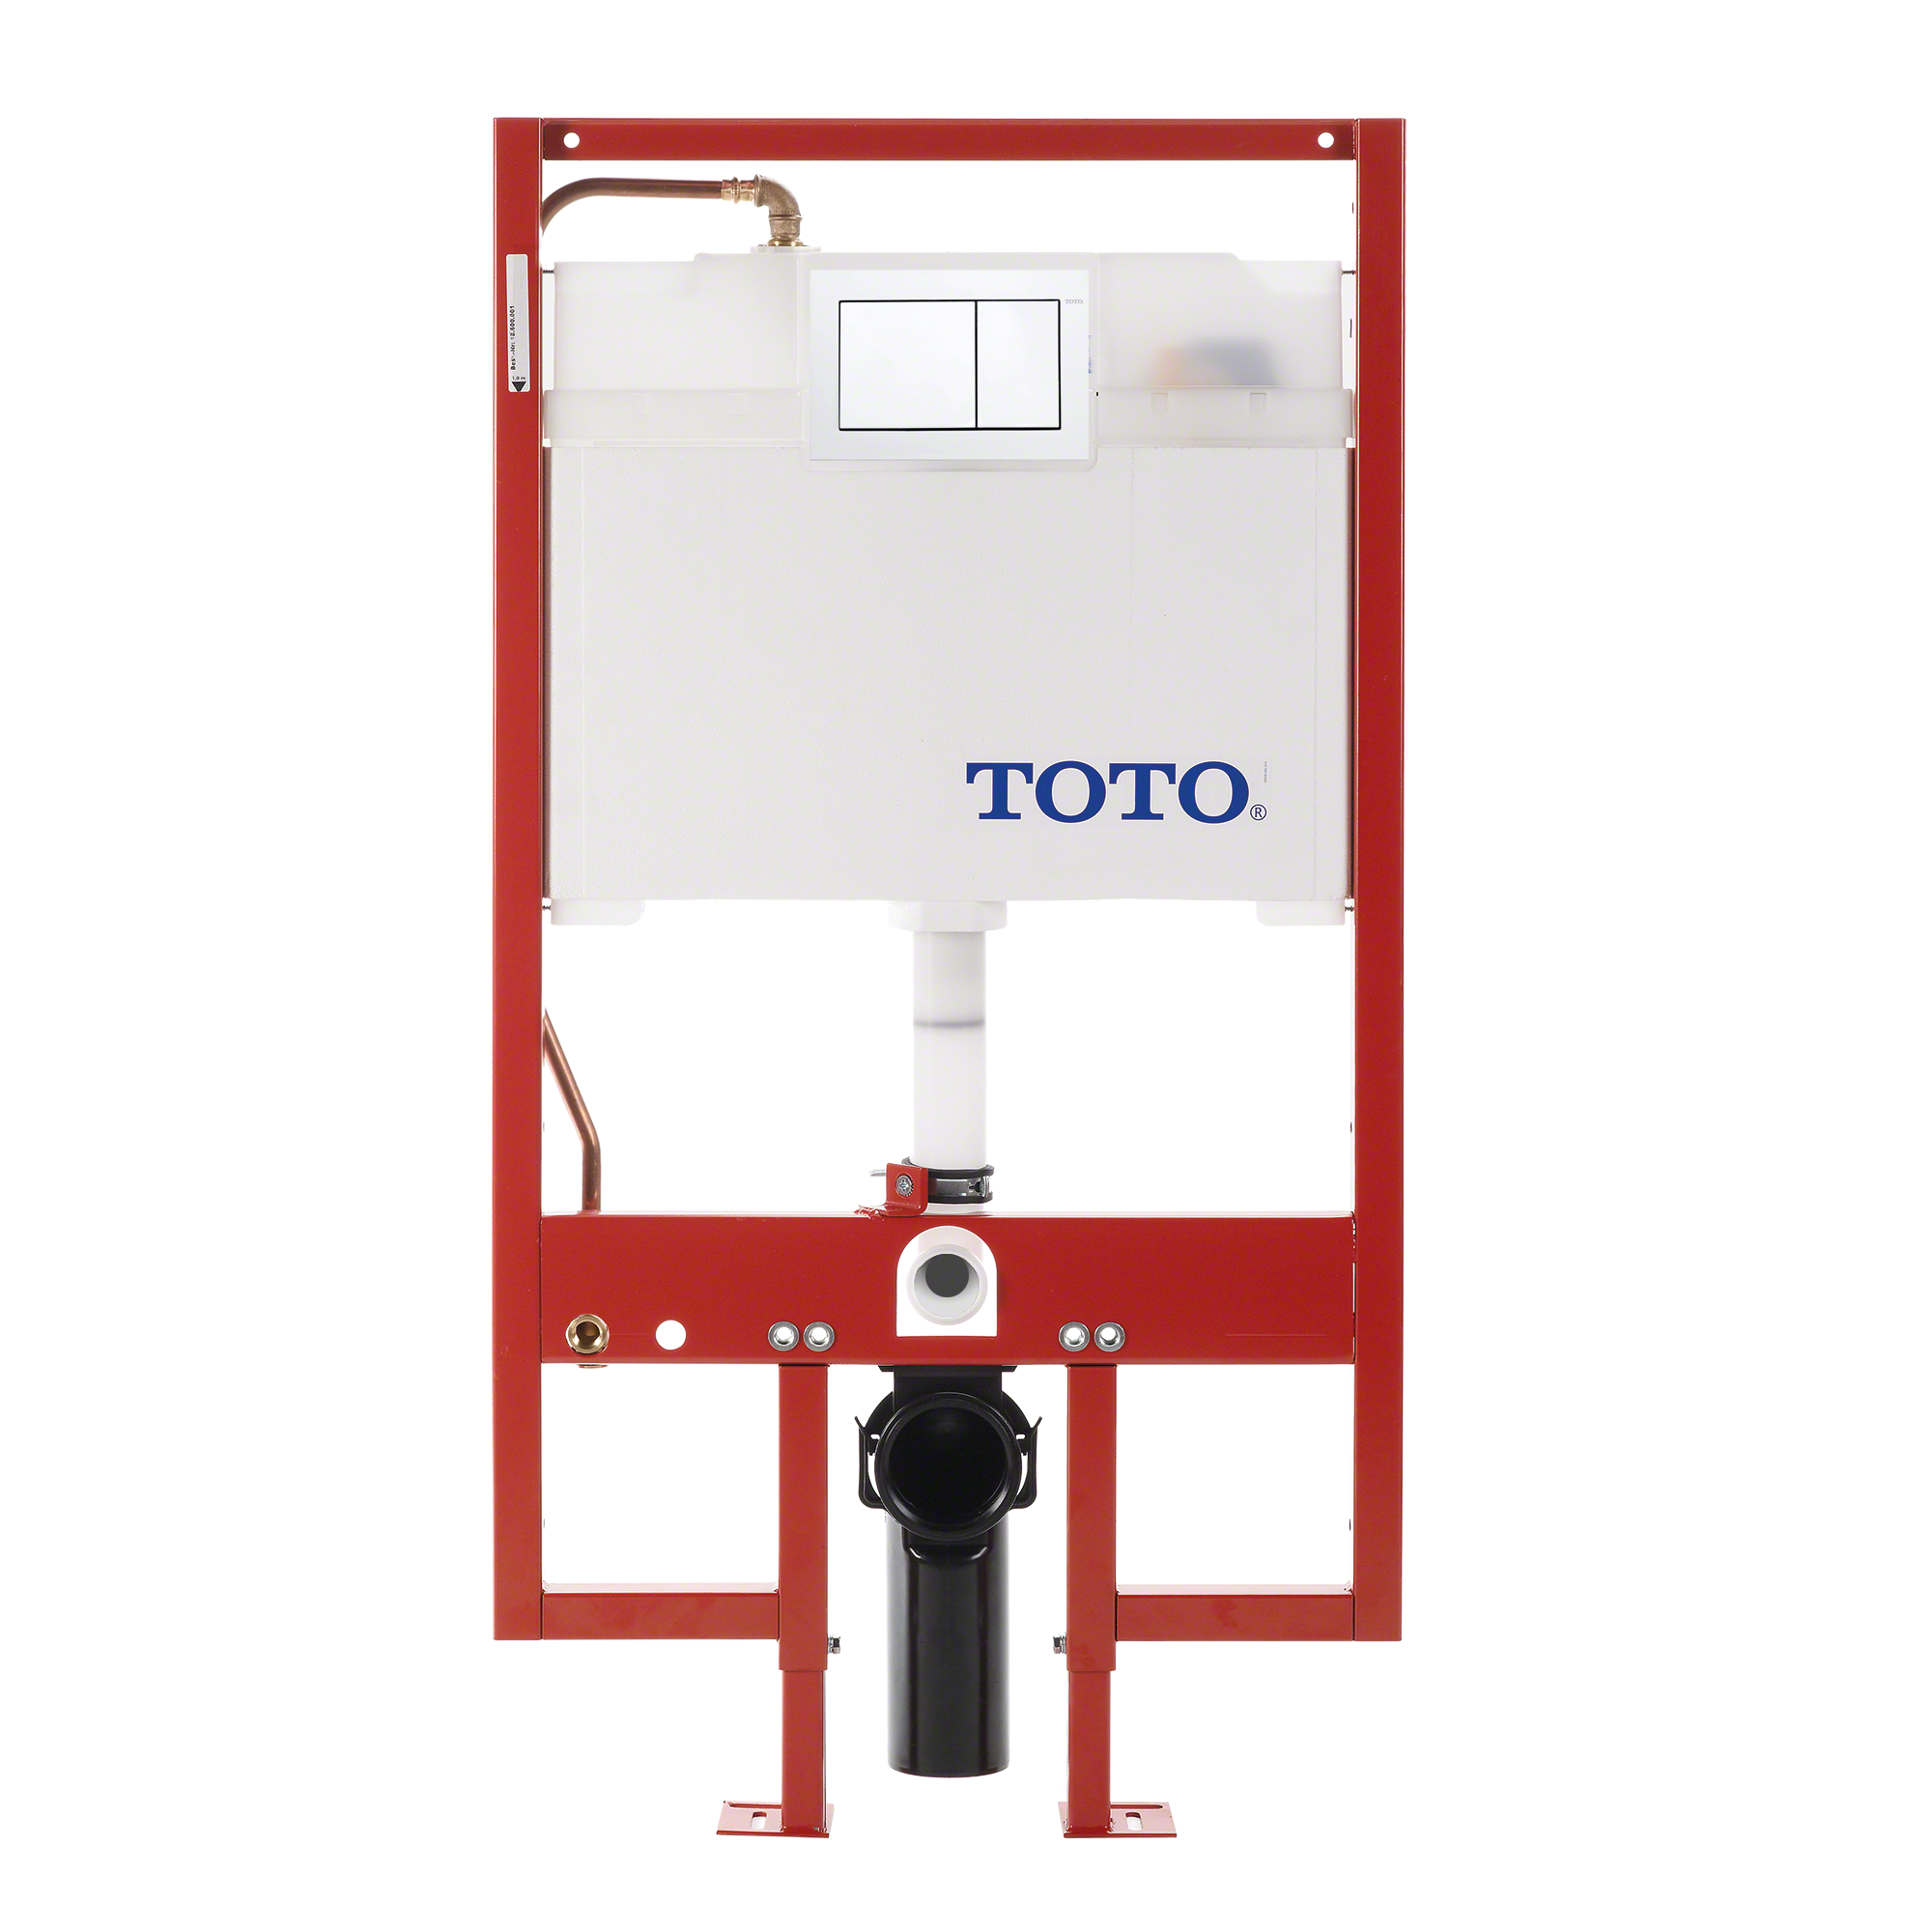 TOTO® DuoFit® In-Wall Dual Flush 0.9 and 1.6 GPF Tank System Copper Supply line and White Rectangular Push Plate - WT152800M#WH